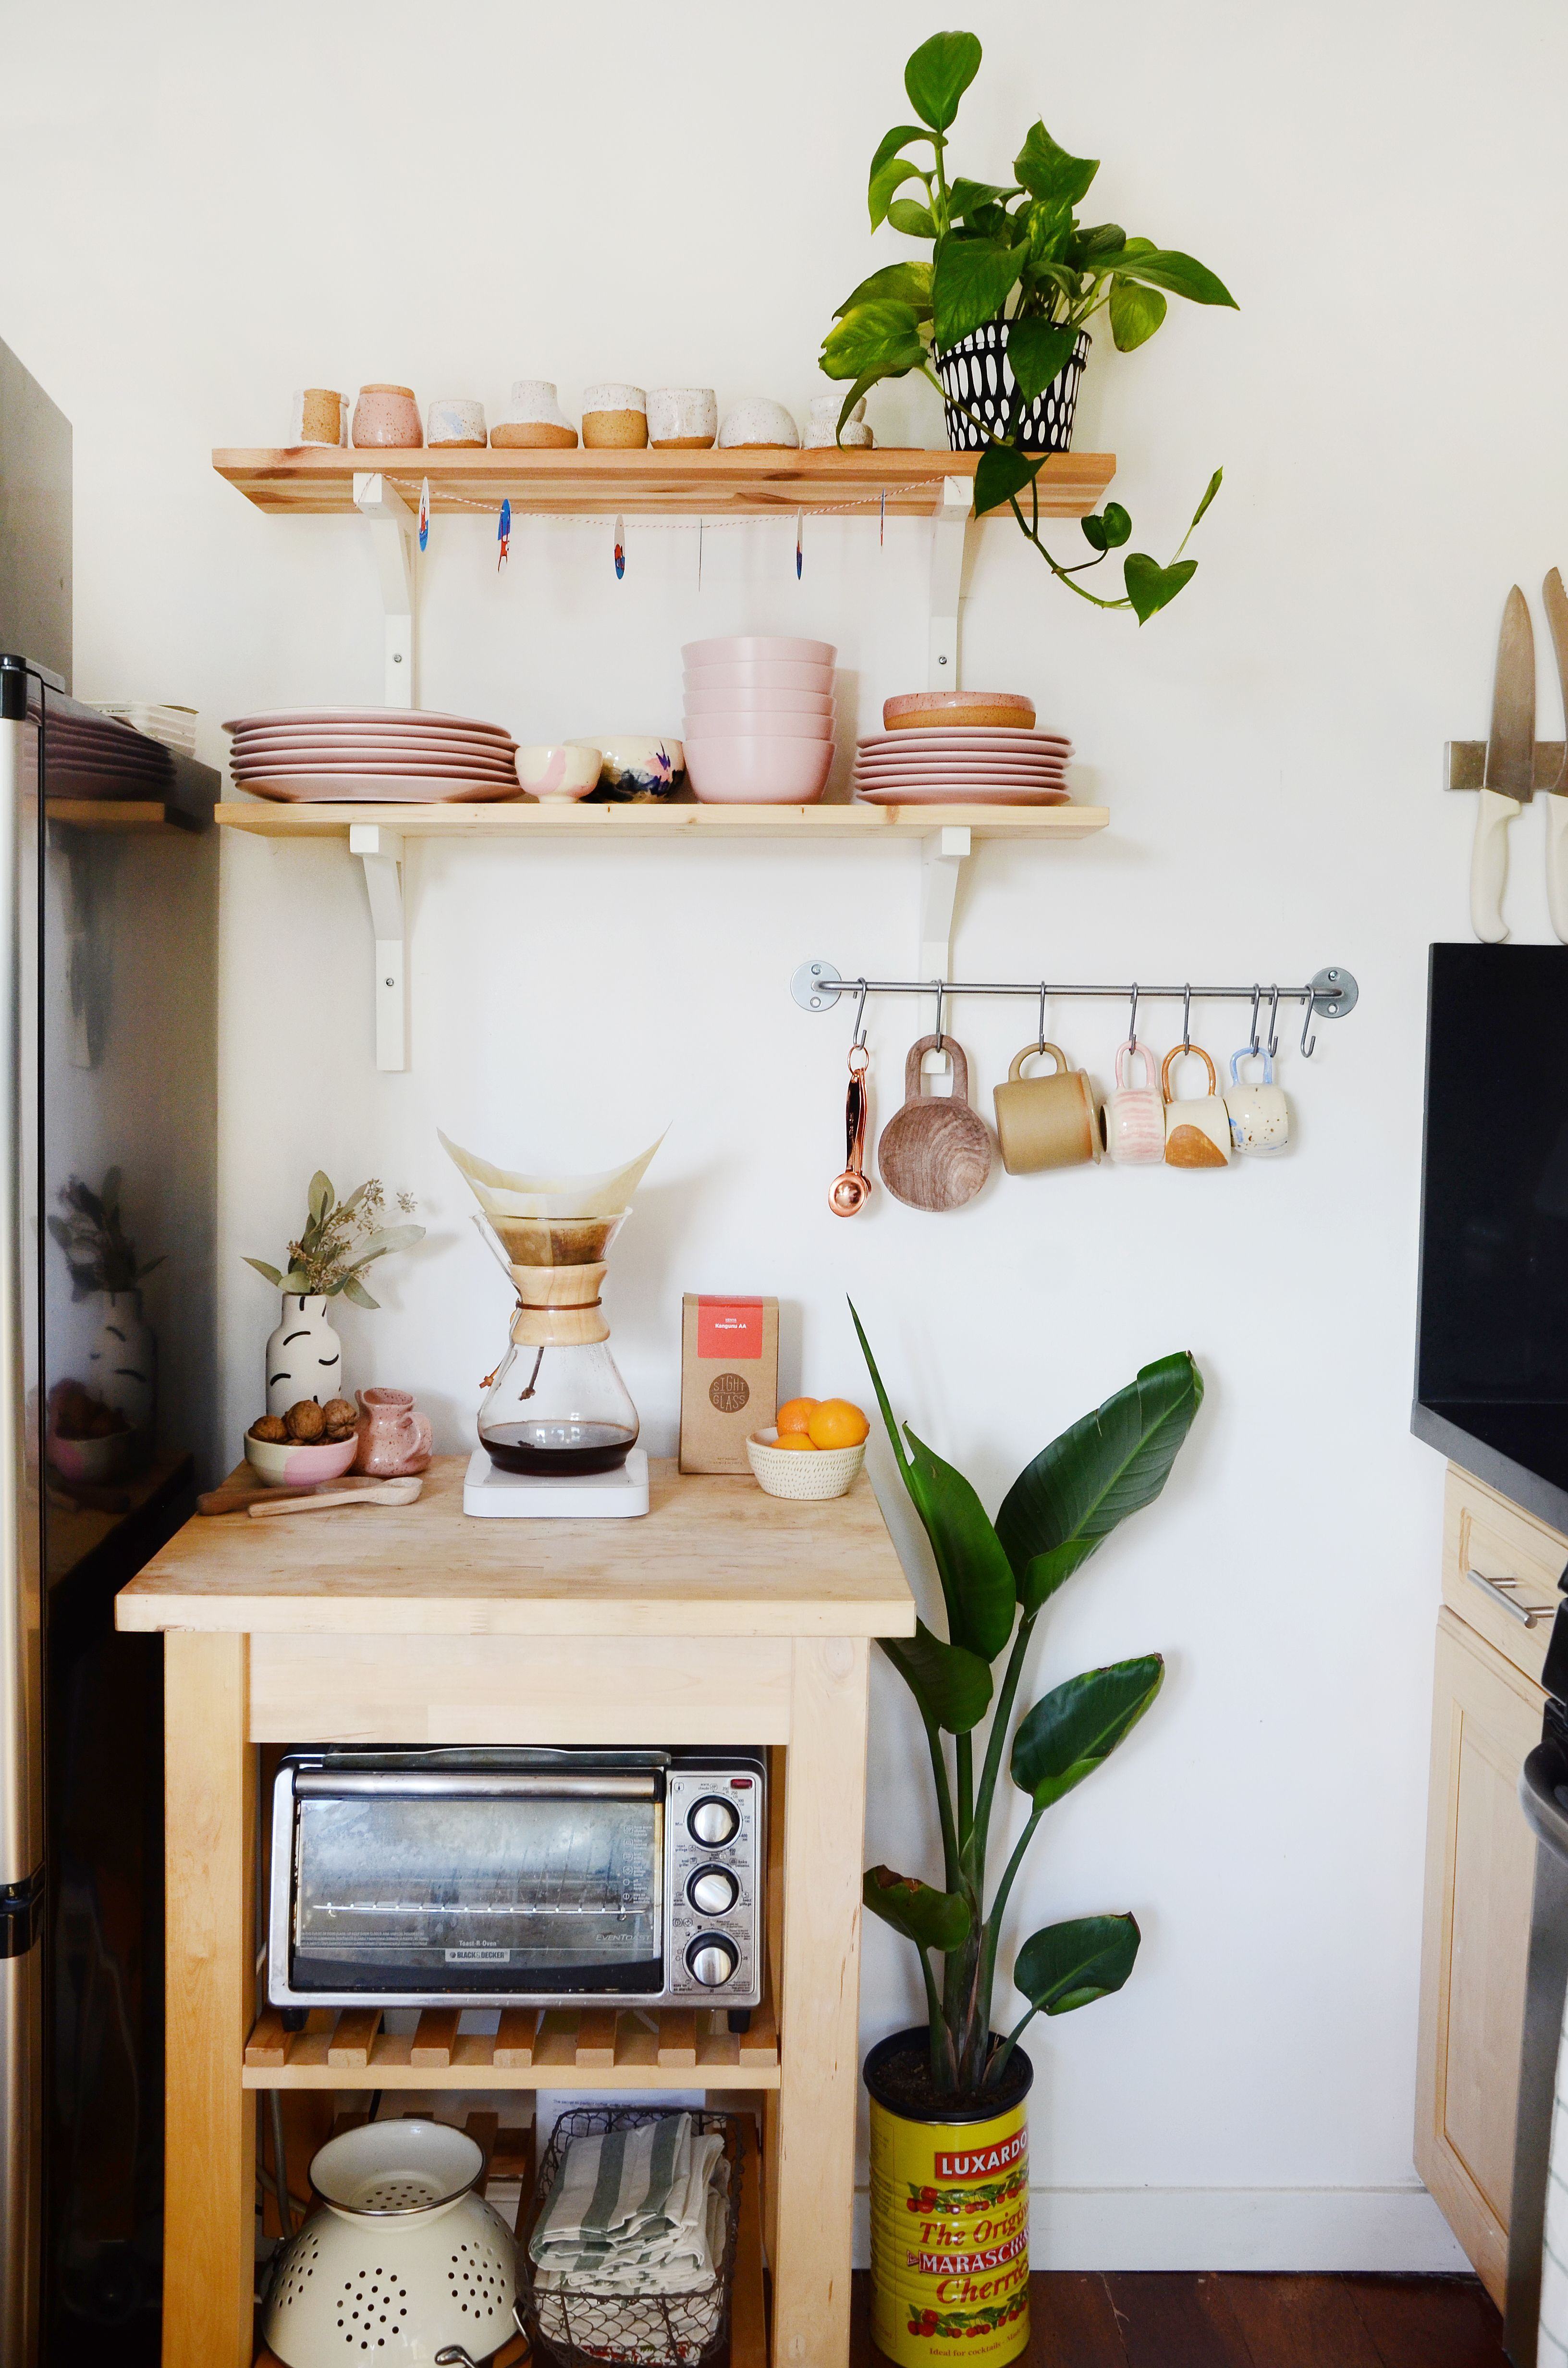 House Tour  A Shared 450 Square Foot San Francisco Rental   Apartment  Therapy e4bbc342bfc6